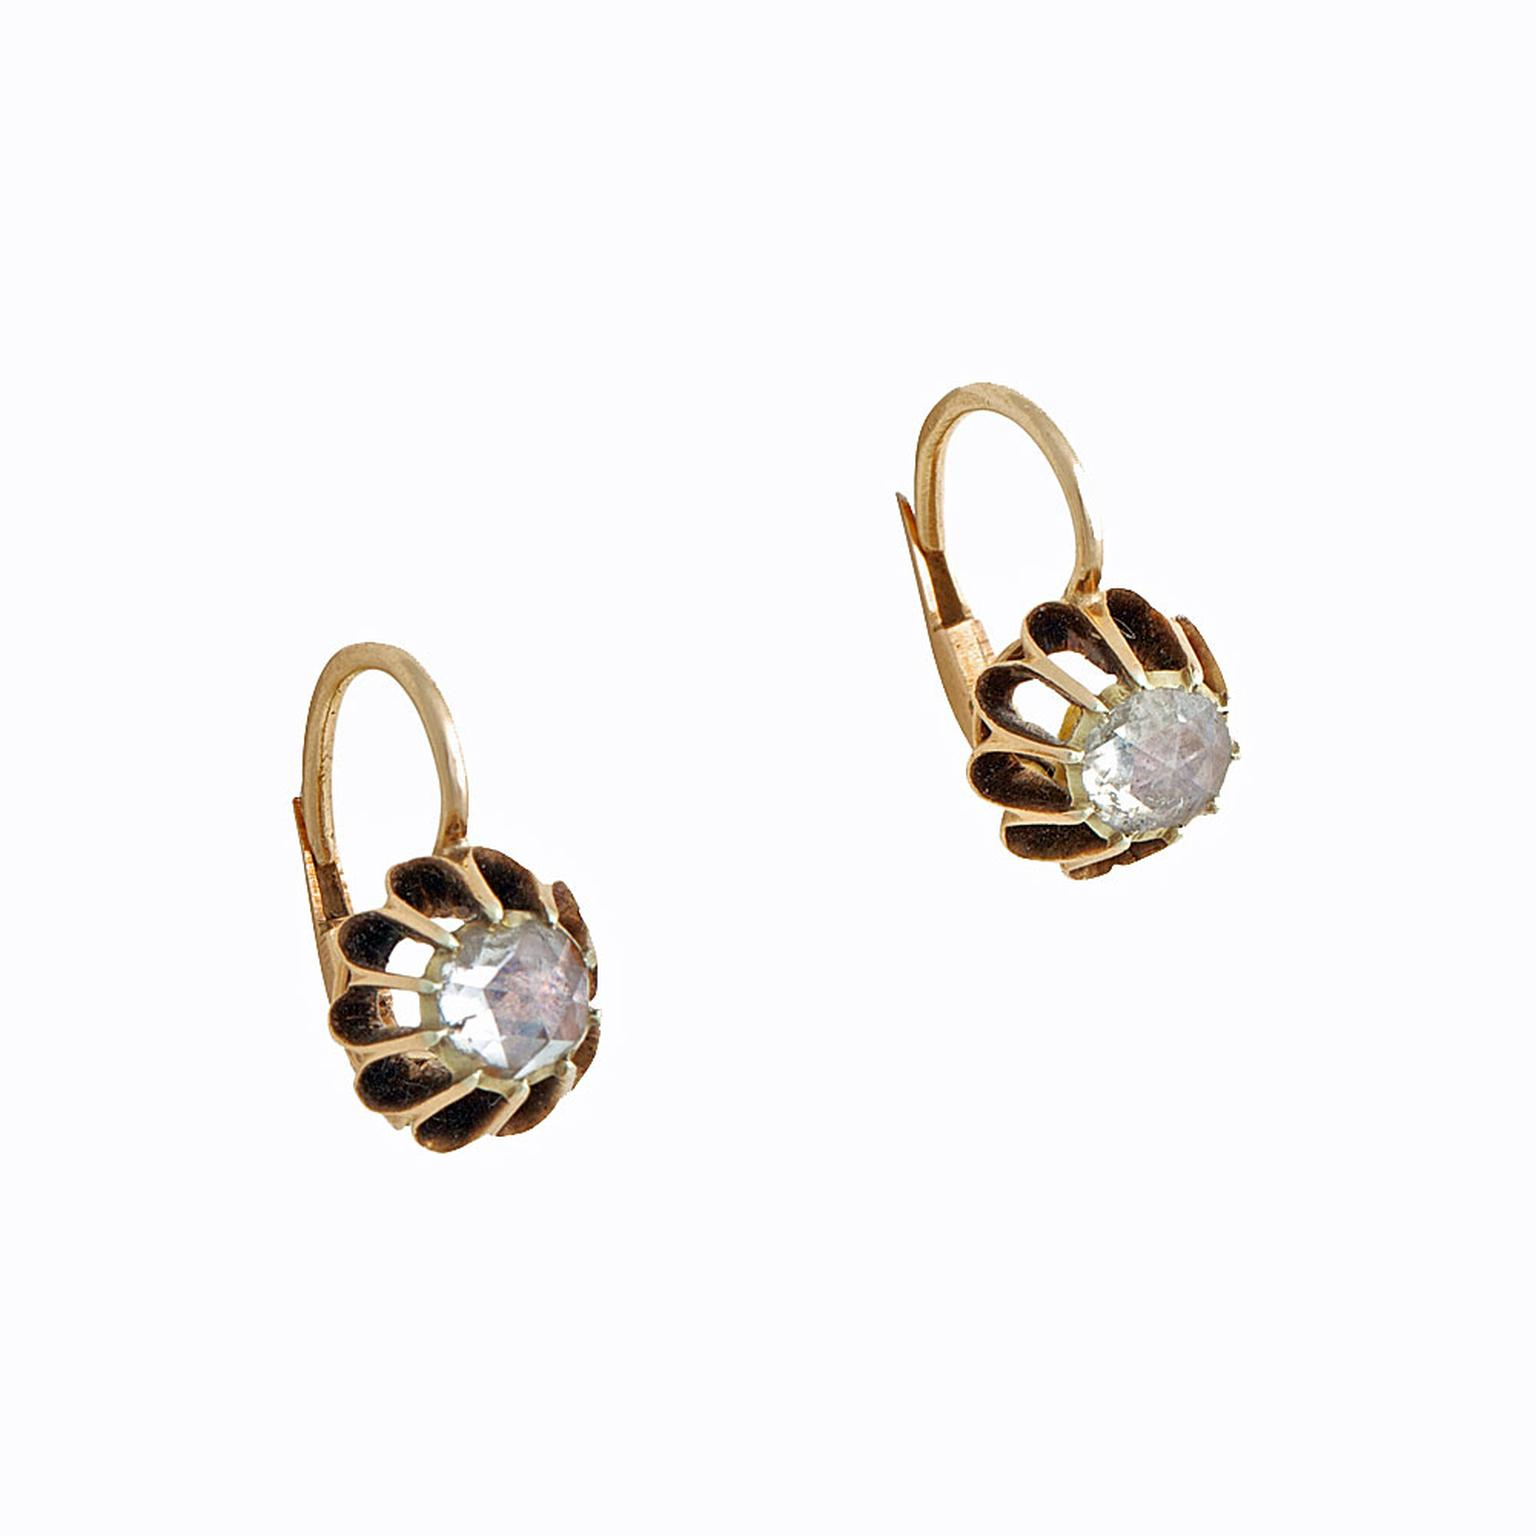 Melody Rodgers sleeper earrings